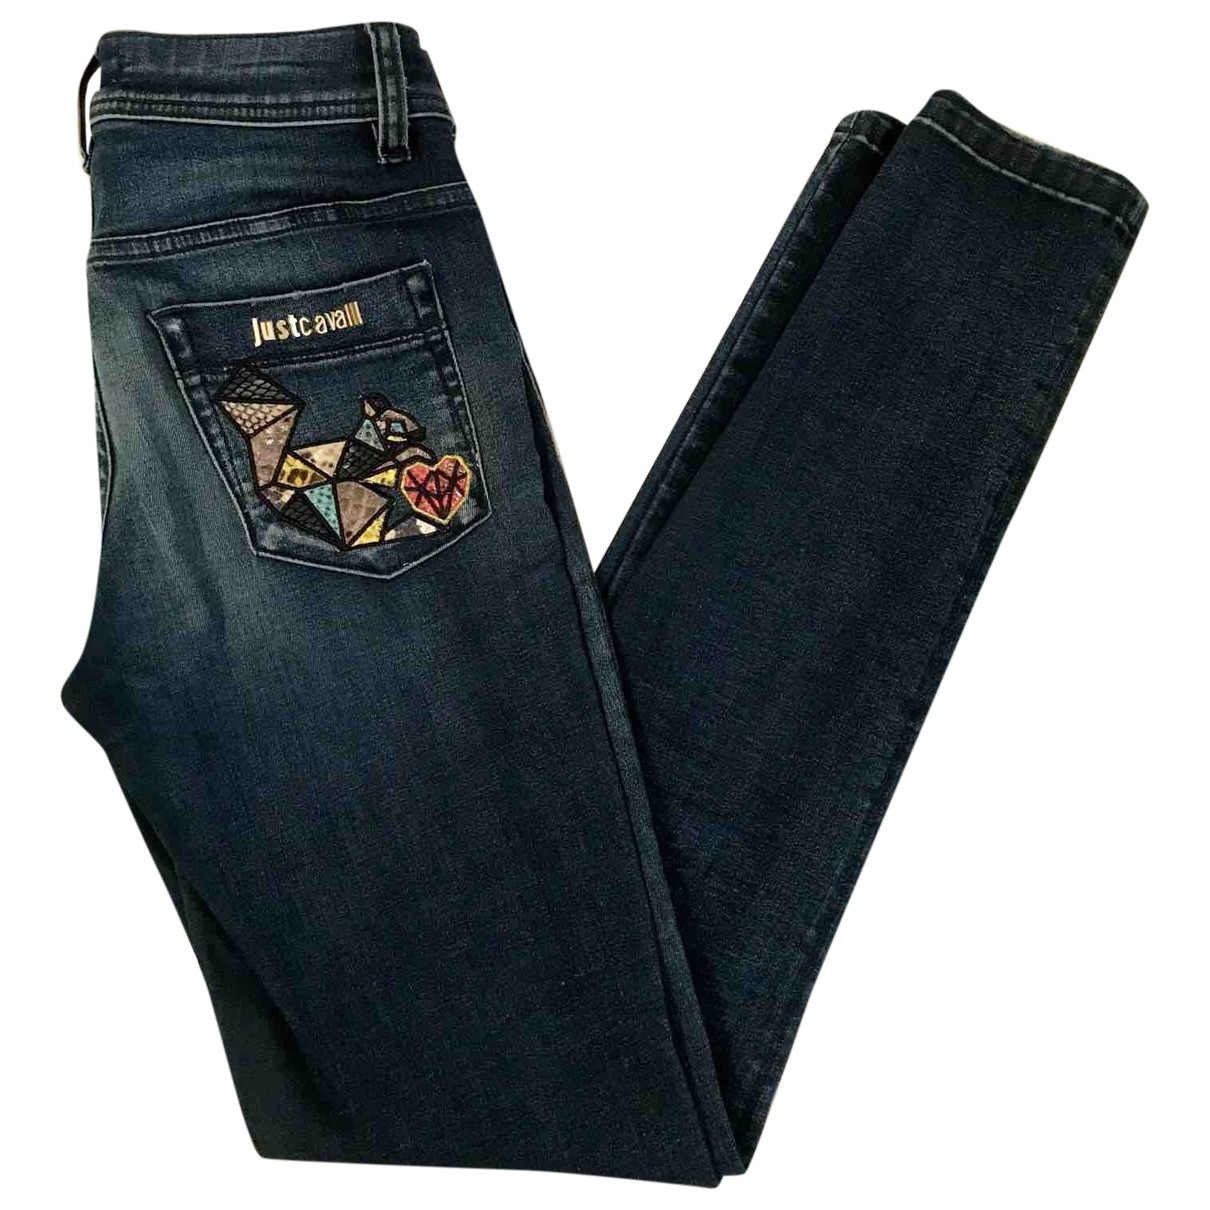 Just Cavalli \N Blue Cotton - elasthane Jeans for Women 25 US